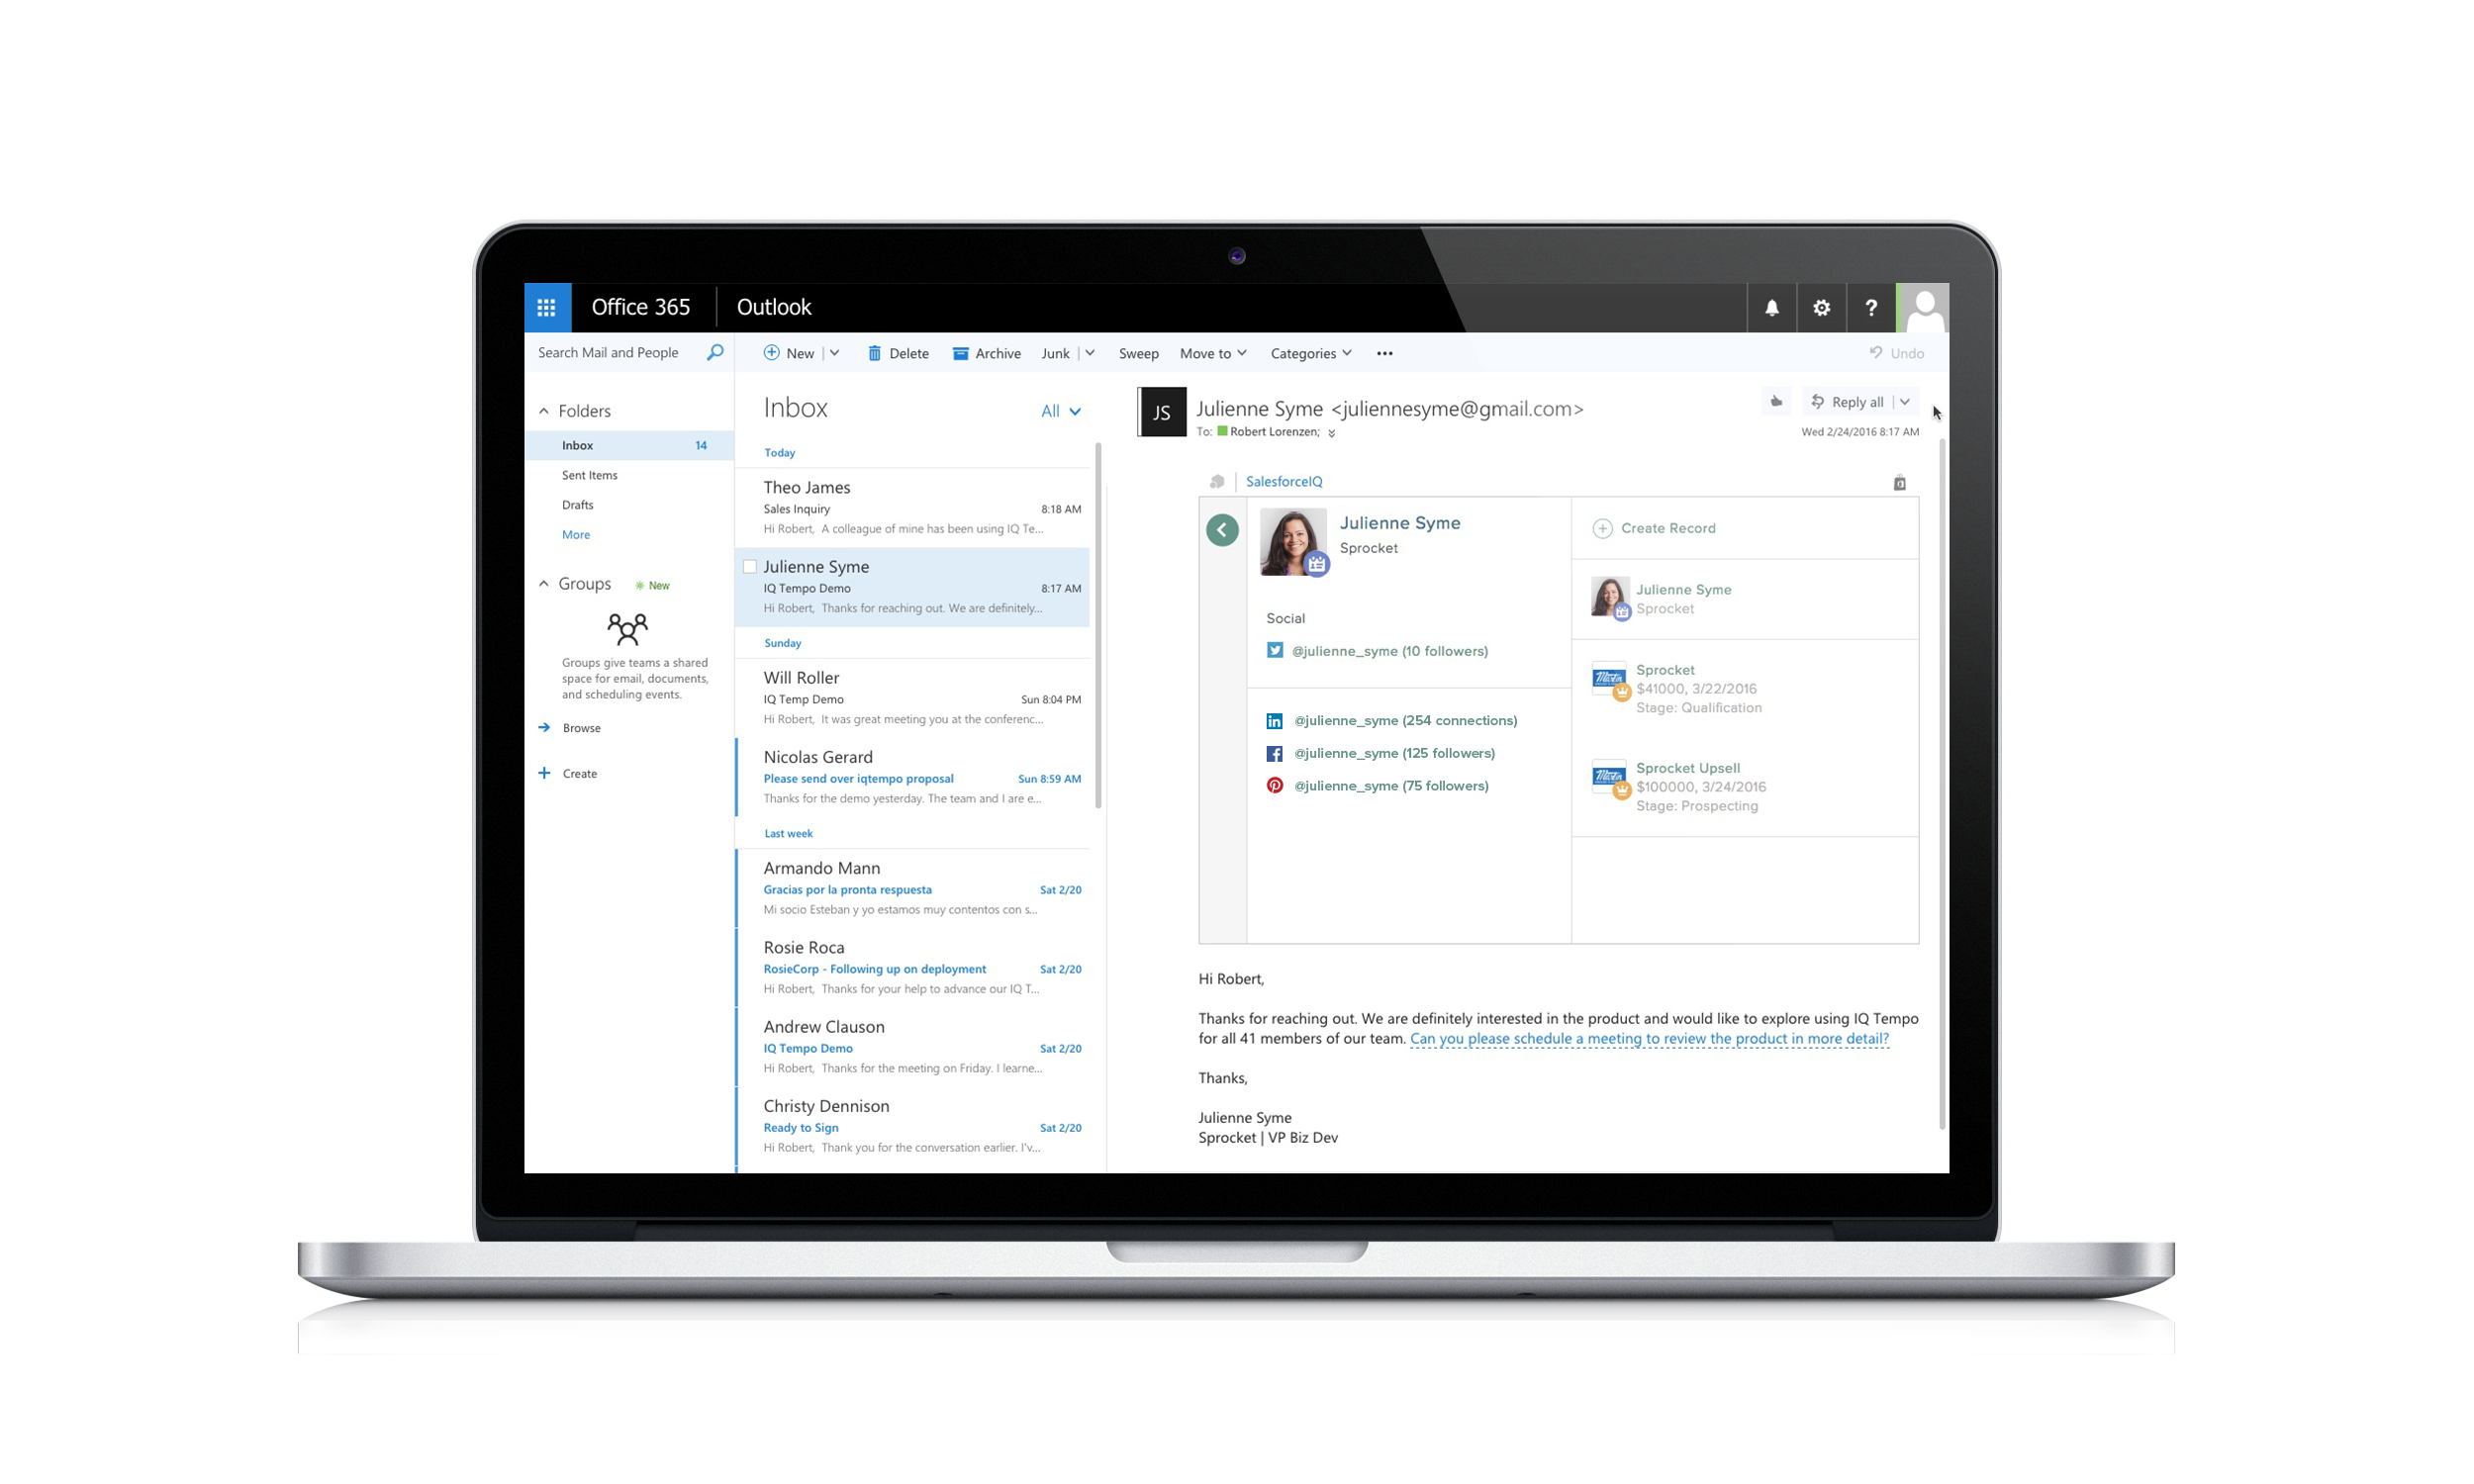 SalesforceIQ Powers Outlook Users with Relationship Intelligence